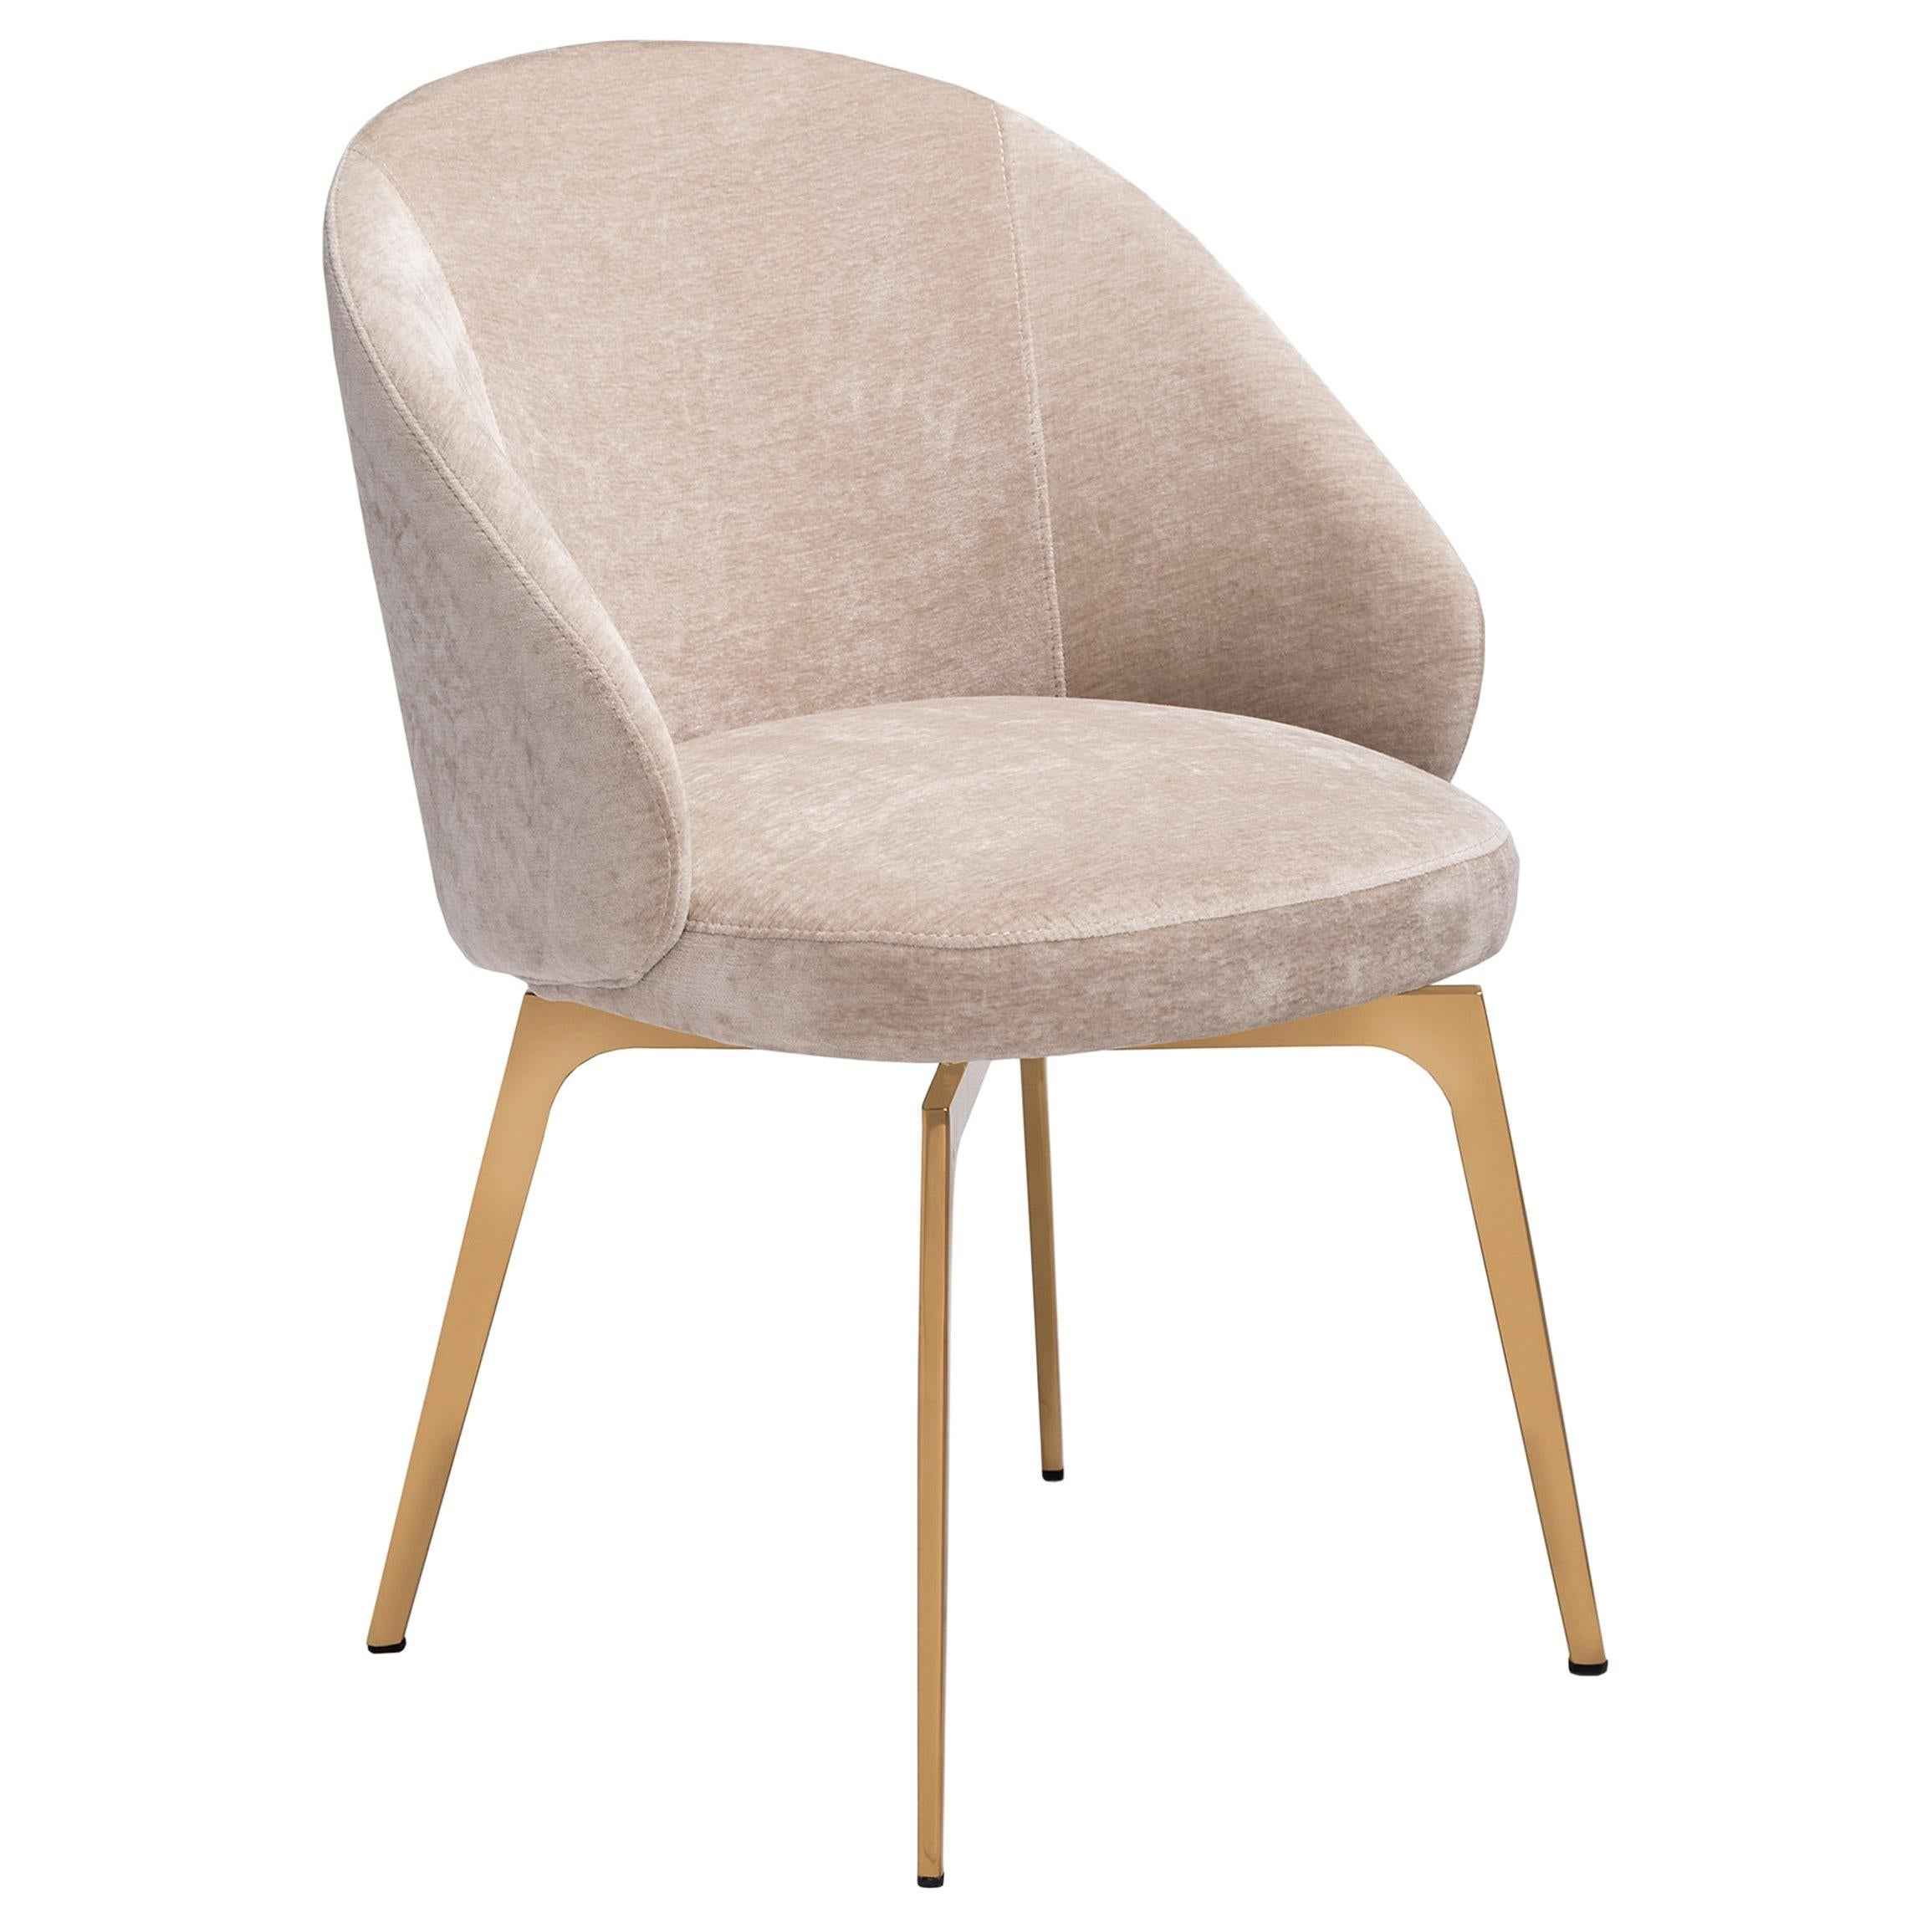 beige dining chairs fabric with arms set of 6 kelly upholstery in latte velvet w modern rose gold